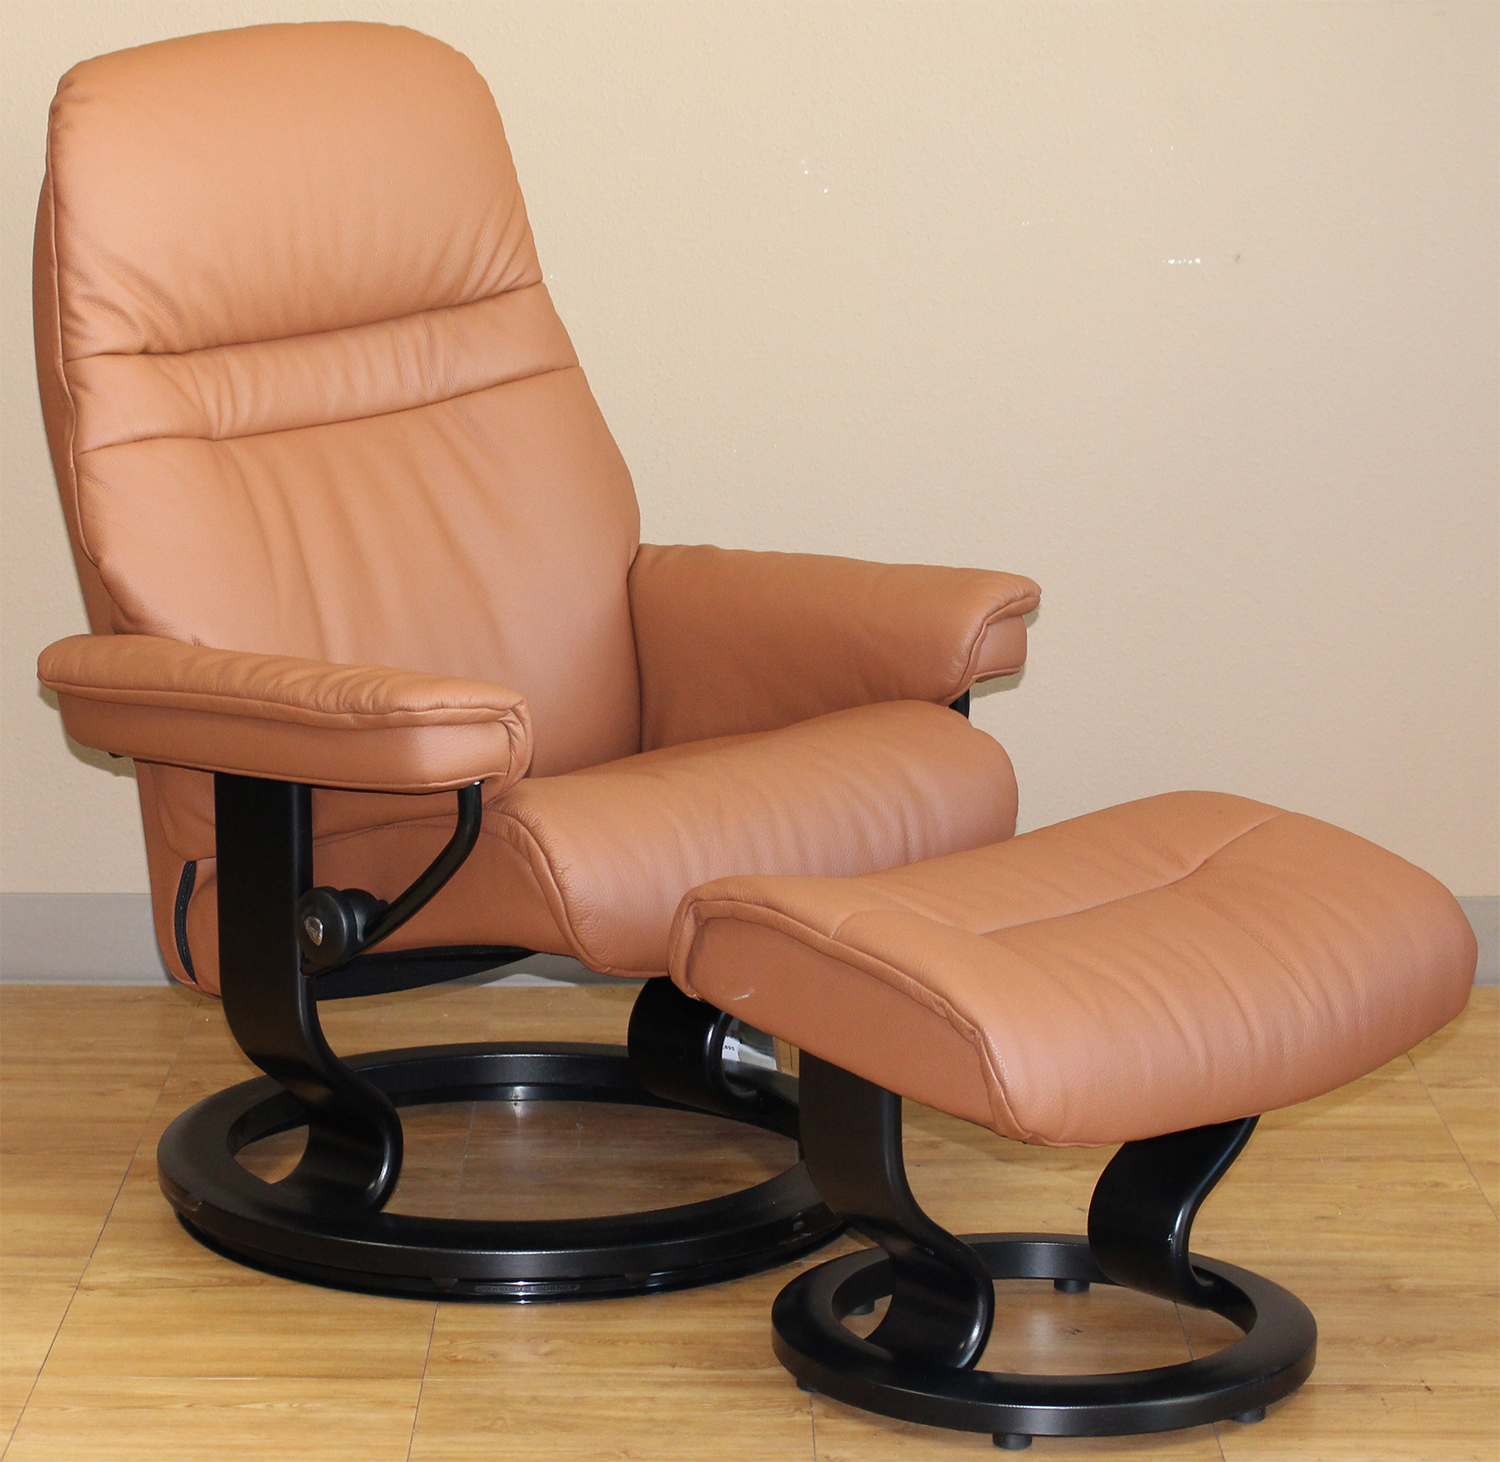 Stressless Sessel Ebay Stressless Sunrise Recliner Chair And Ottoman In Classic Palm Brown Leather By Ekornes